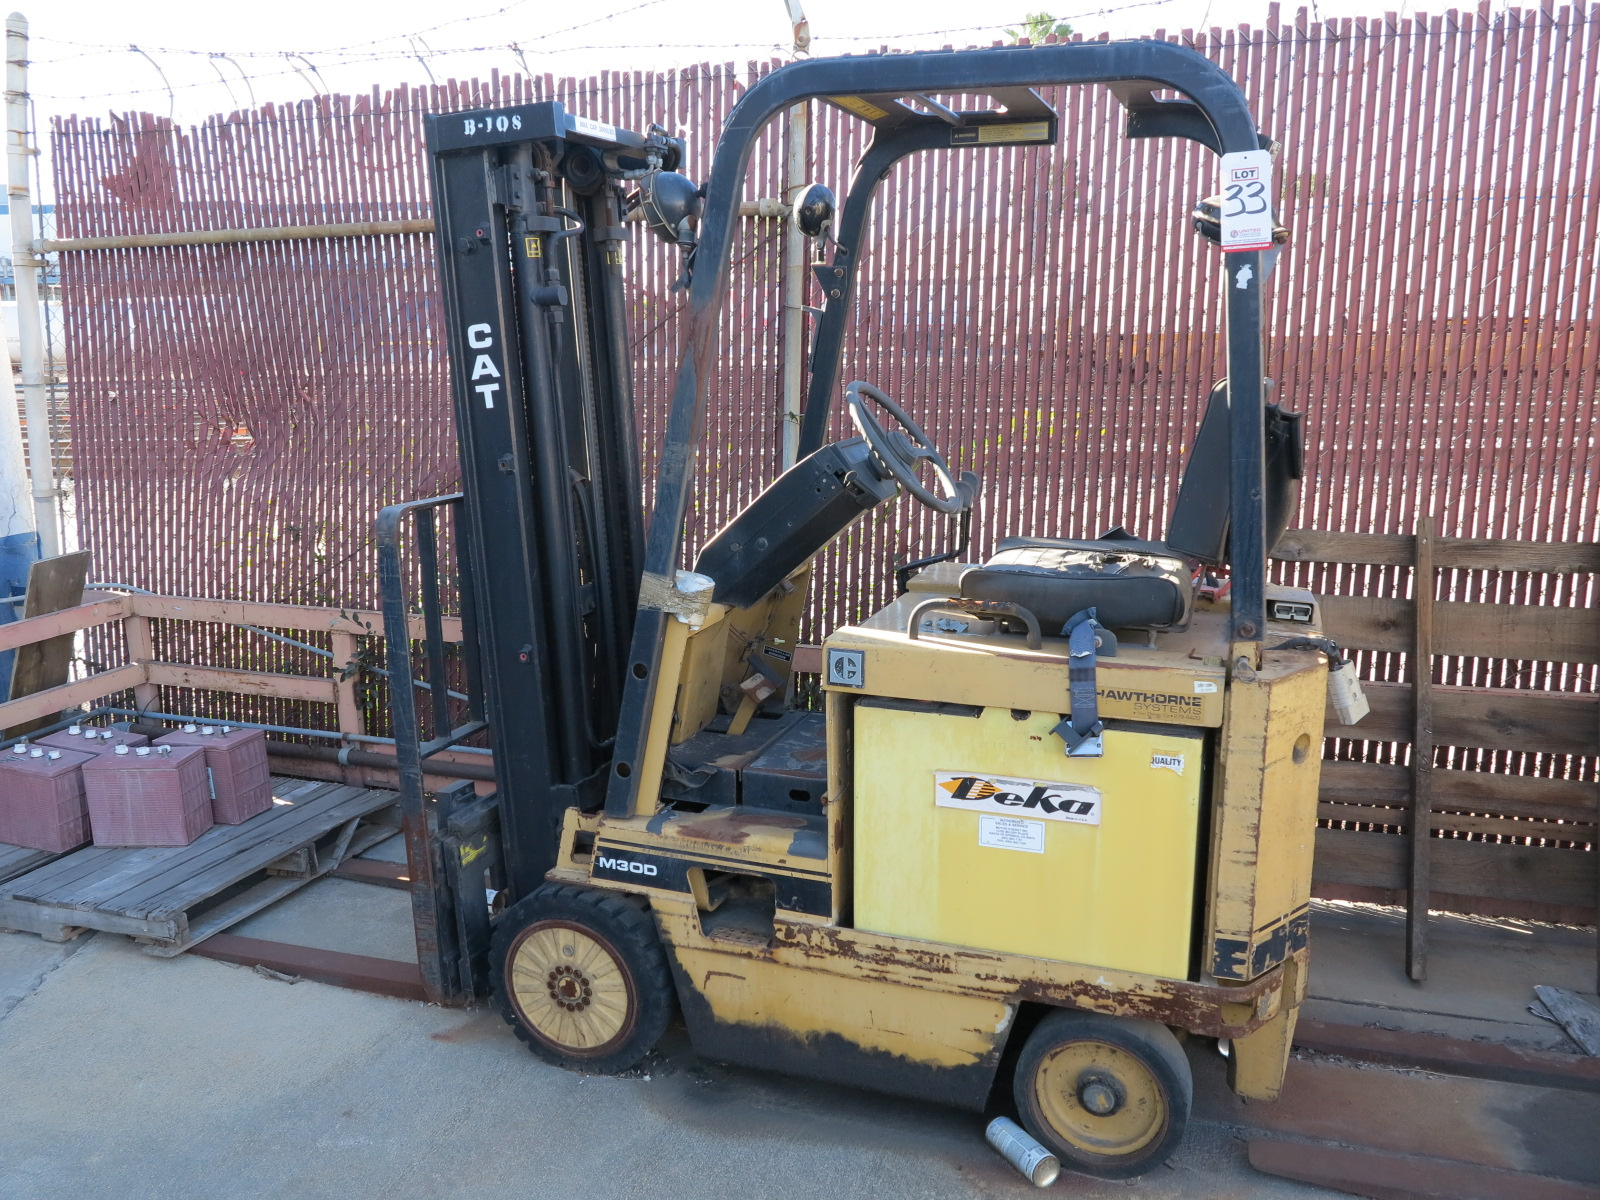 Lot 33 - CATERPILLAR ELECTRIC FORKLIFT, MODEL M30D, 36 V, S/N 970151, 3-STAGE MAST, OUT OF SERVICE